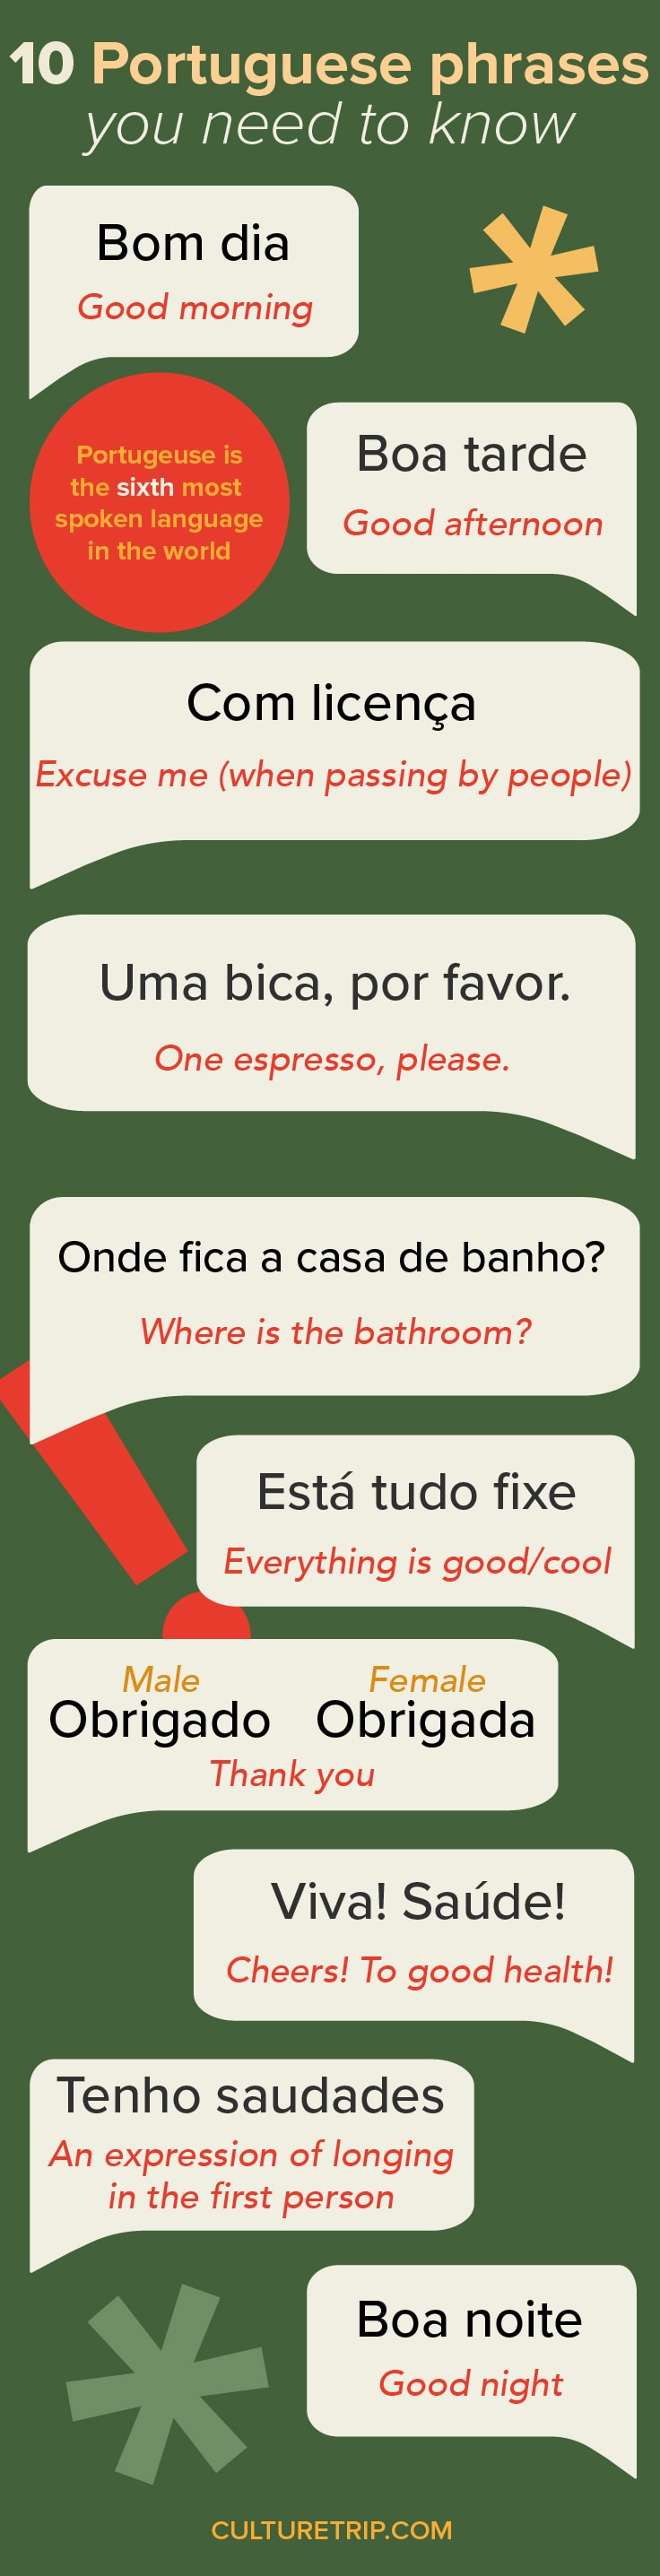 10 essential portuguese phrases you need to know before visiting 10 essential portuguese phrases you need to know before visiting portugal m4hsunfo